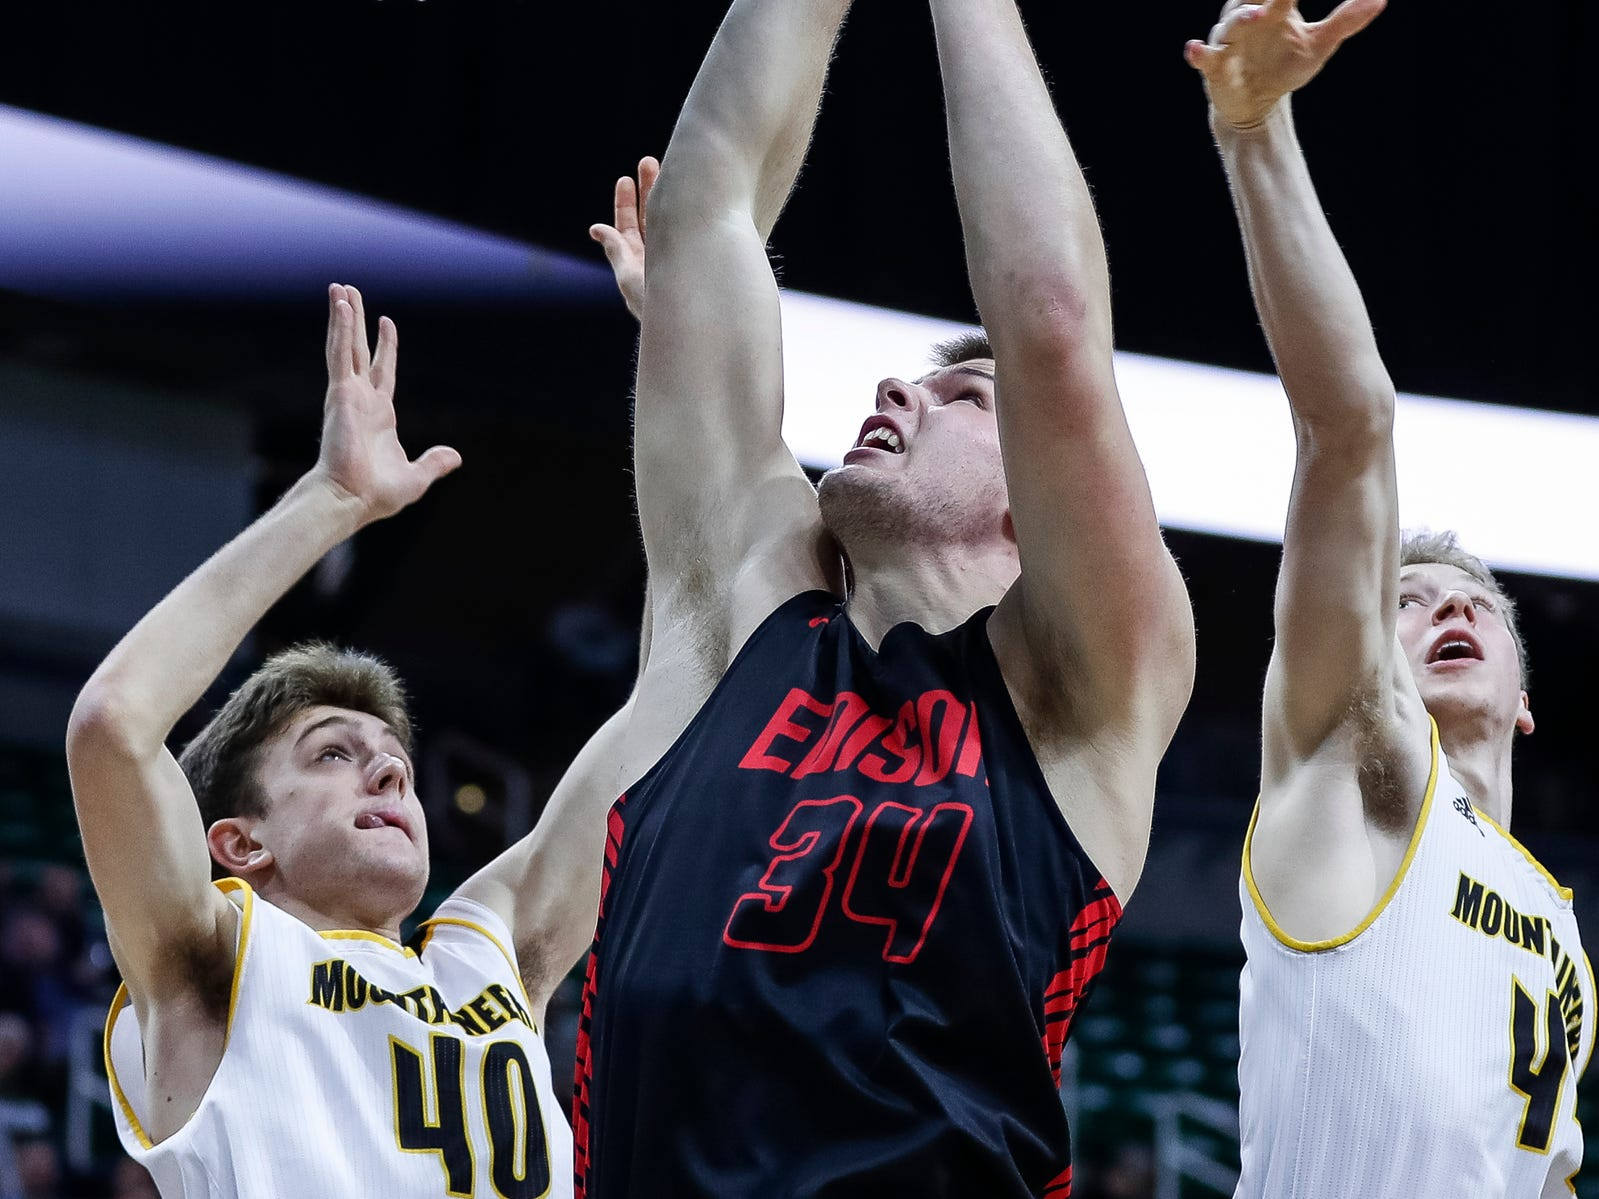 Detroit Edison's Bryce George (34) battles for a rebound with Iron Mountain's Tony Feira (40) during the first half of MHSAA Division 3 semifinal at the Breslin Center in East Lansing, Thursday, March 14, 2019.